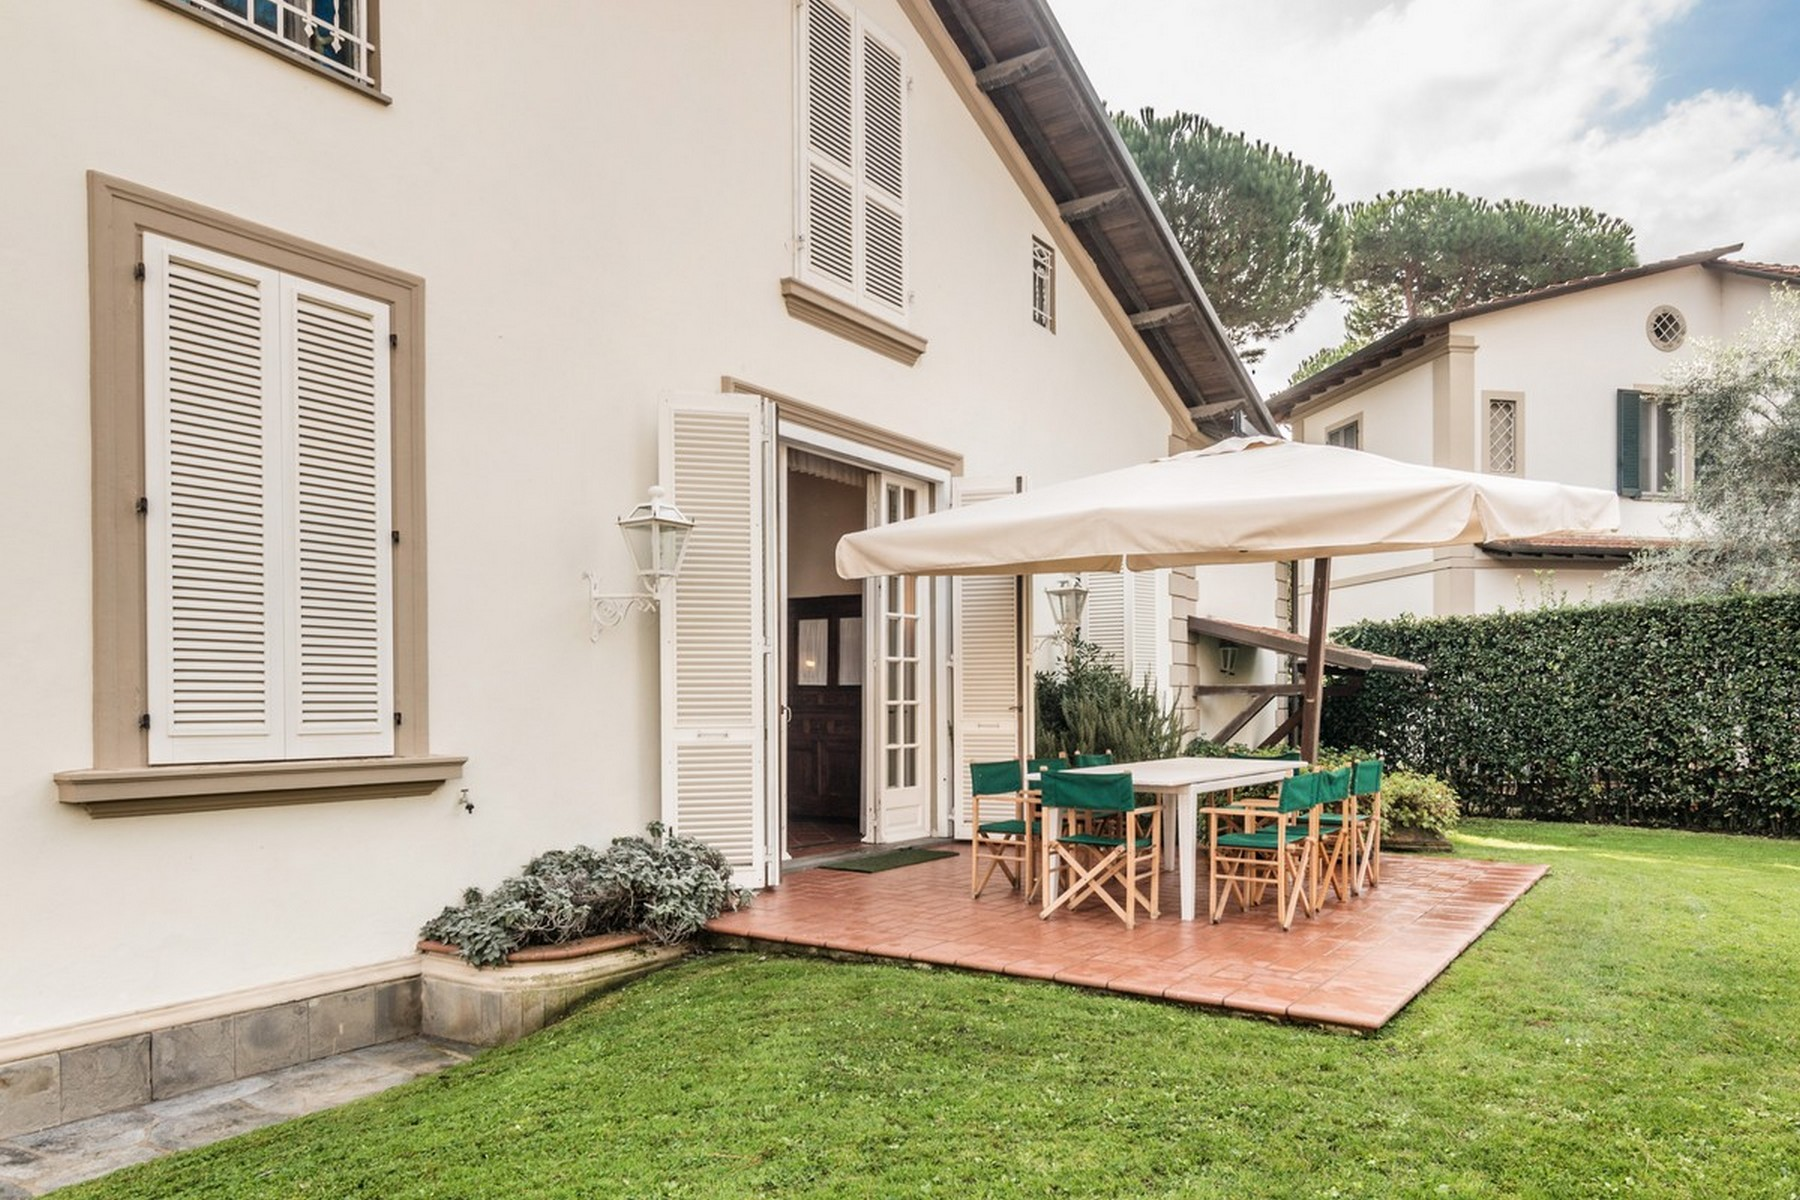 Additional photo for property listing at Incomparable property in Forte dei Marmi Roma Imperiale Forte Dei Marmi, Lucca 50100 Italien